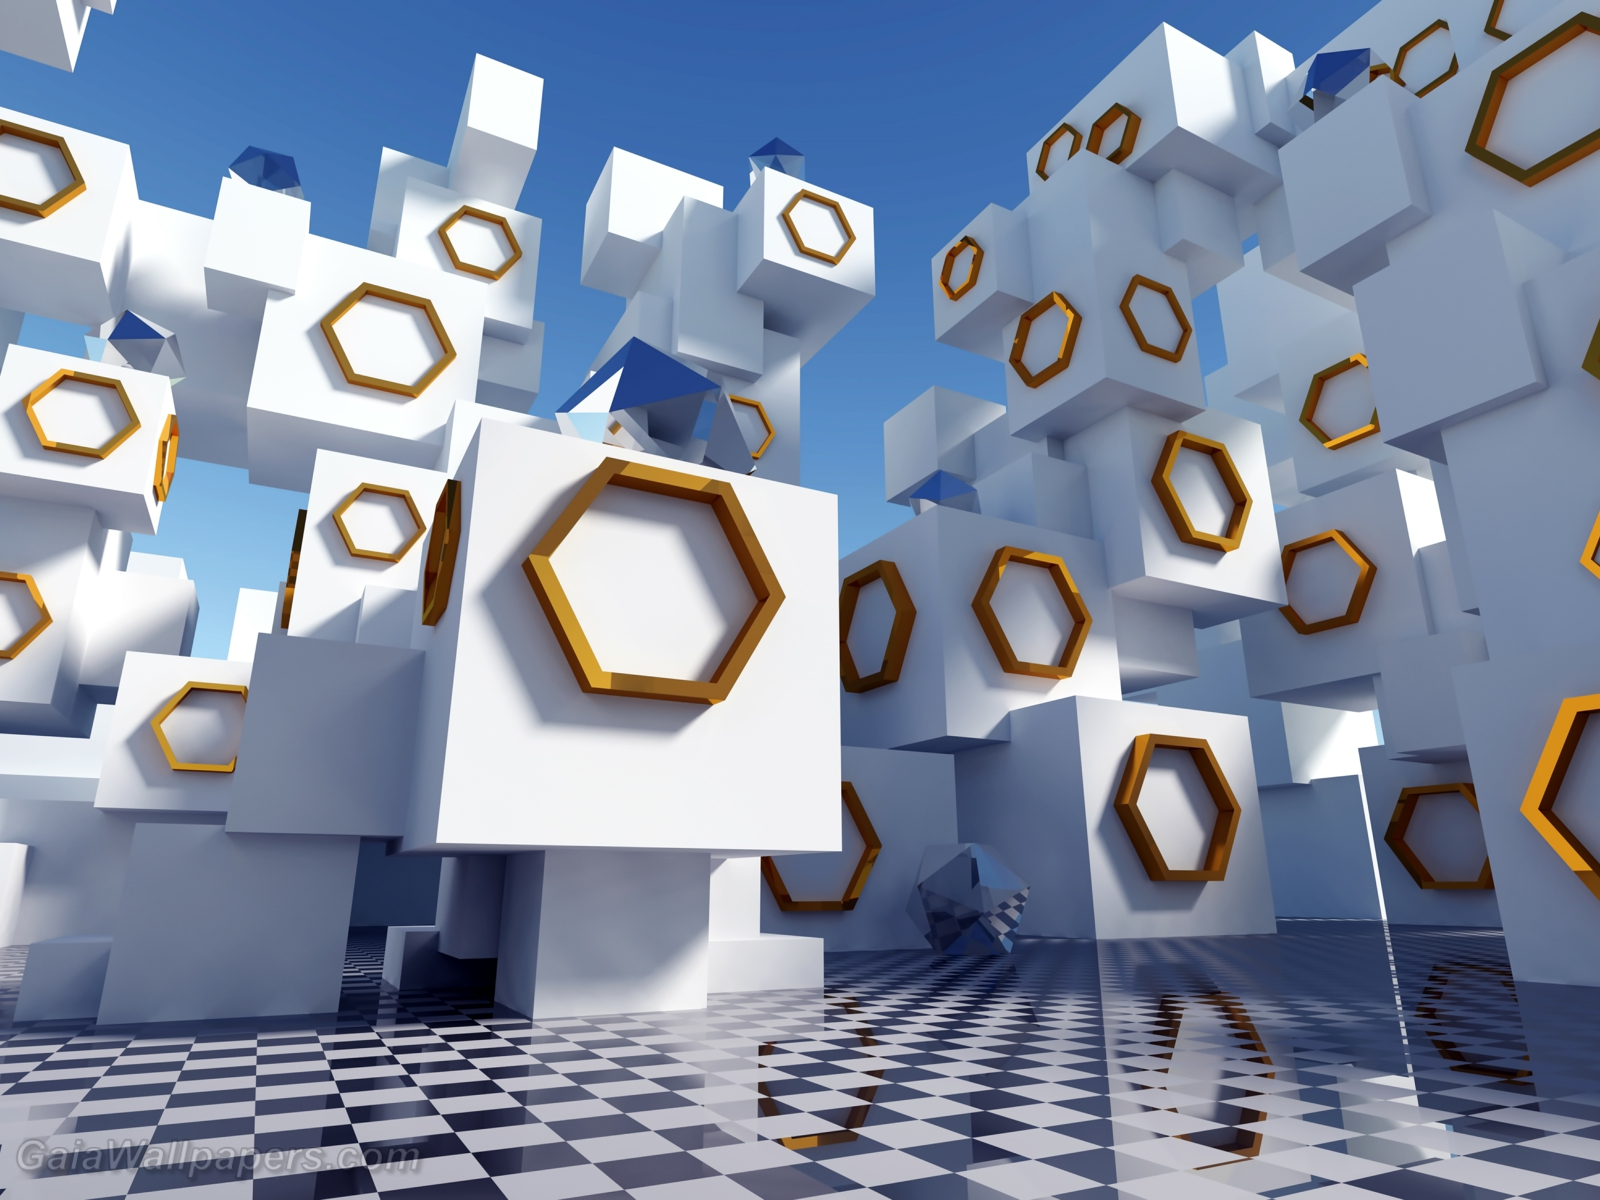 Mysterious cubes stacked up with symbols - Free desktop wallpapers